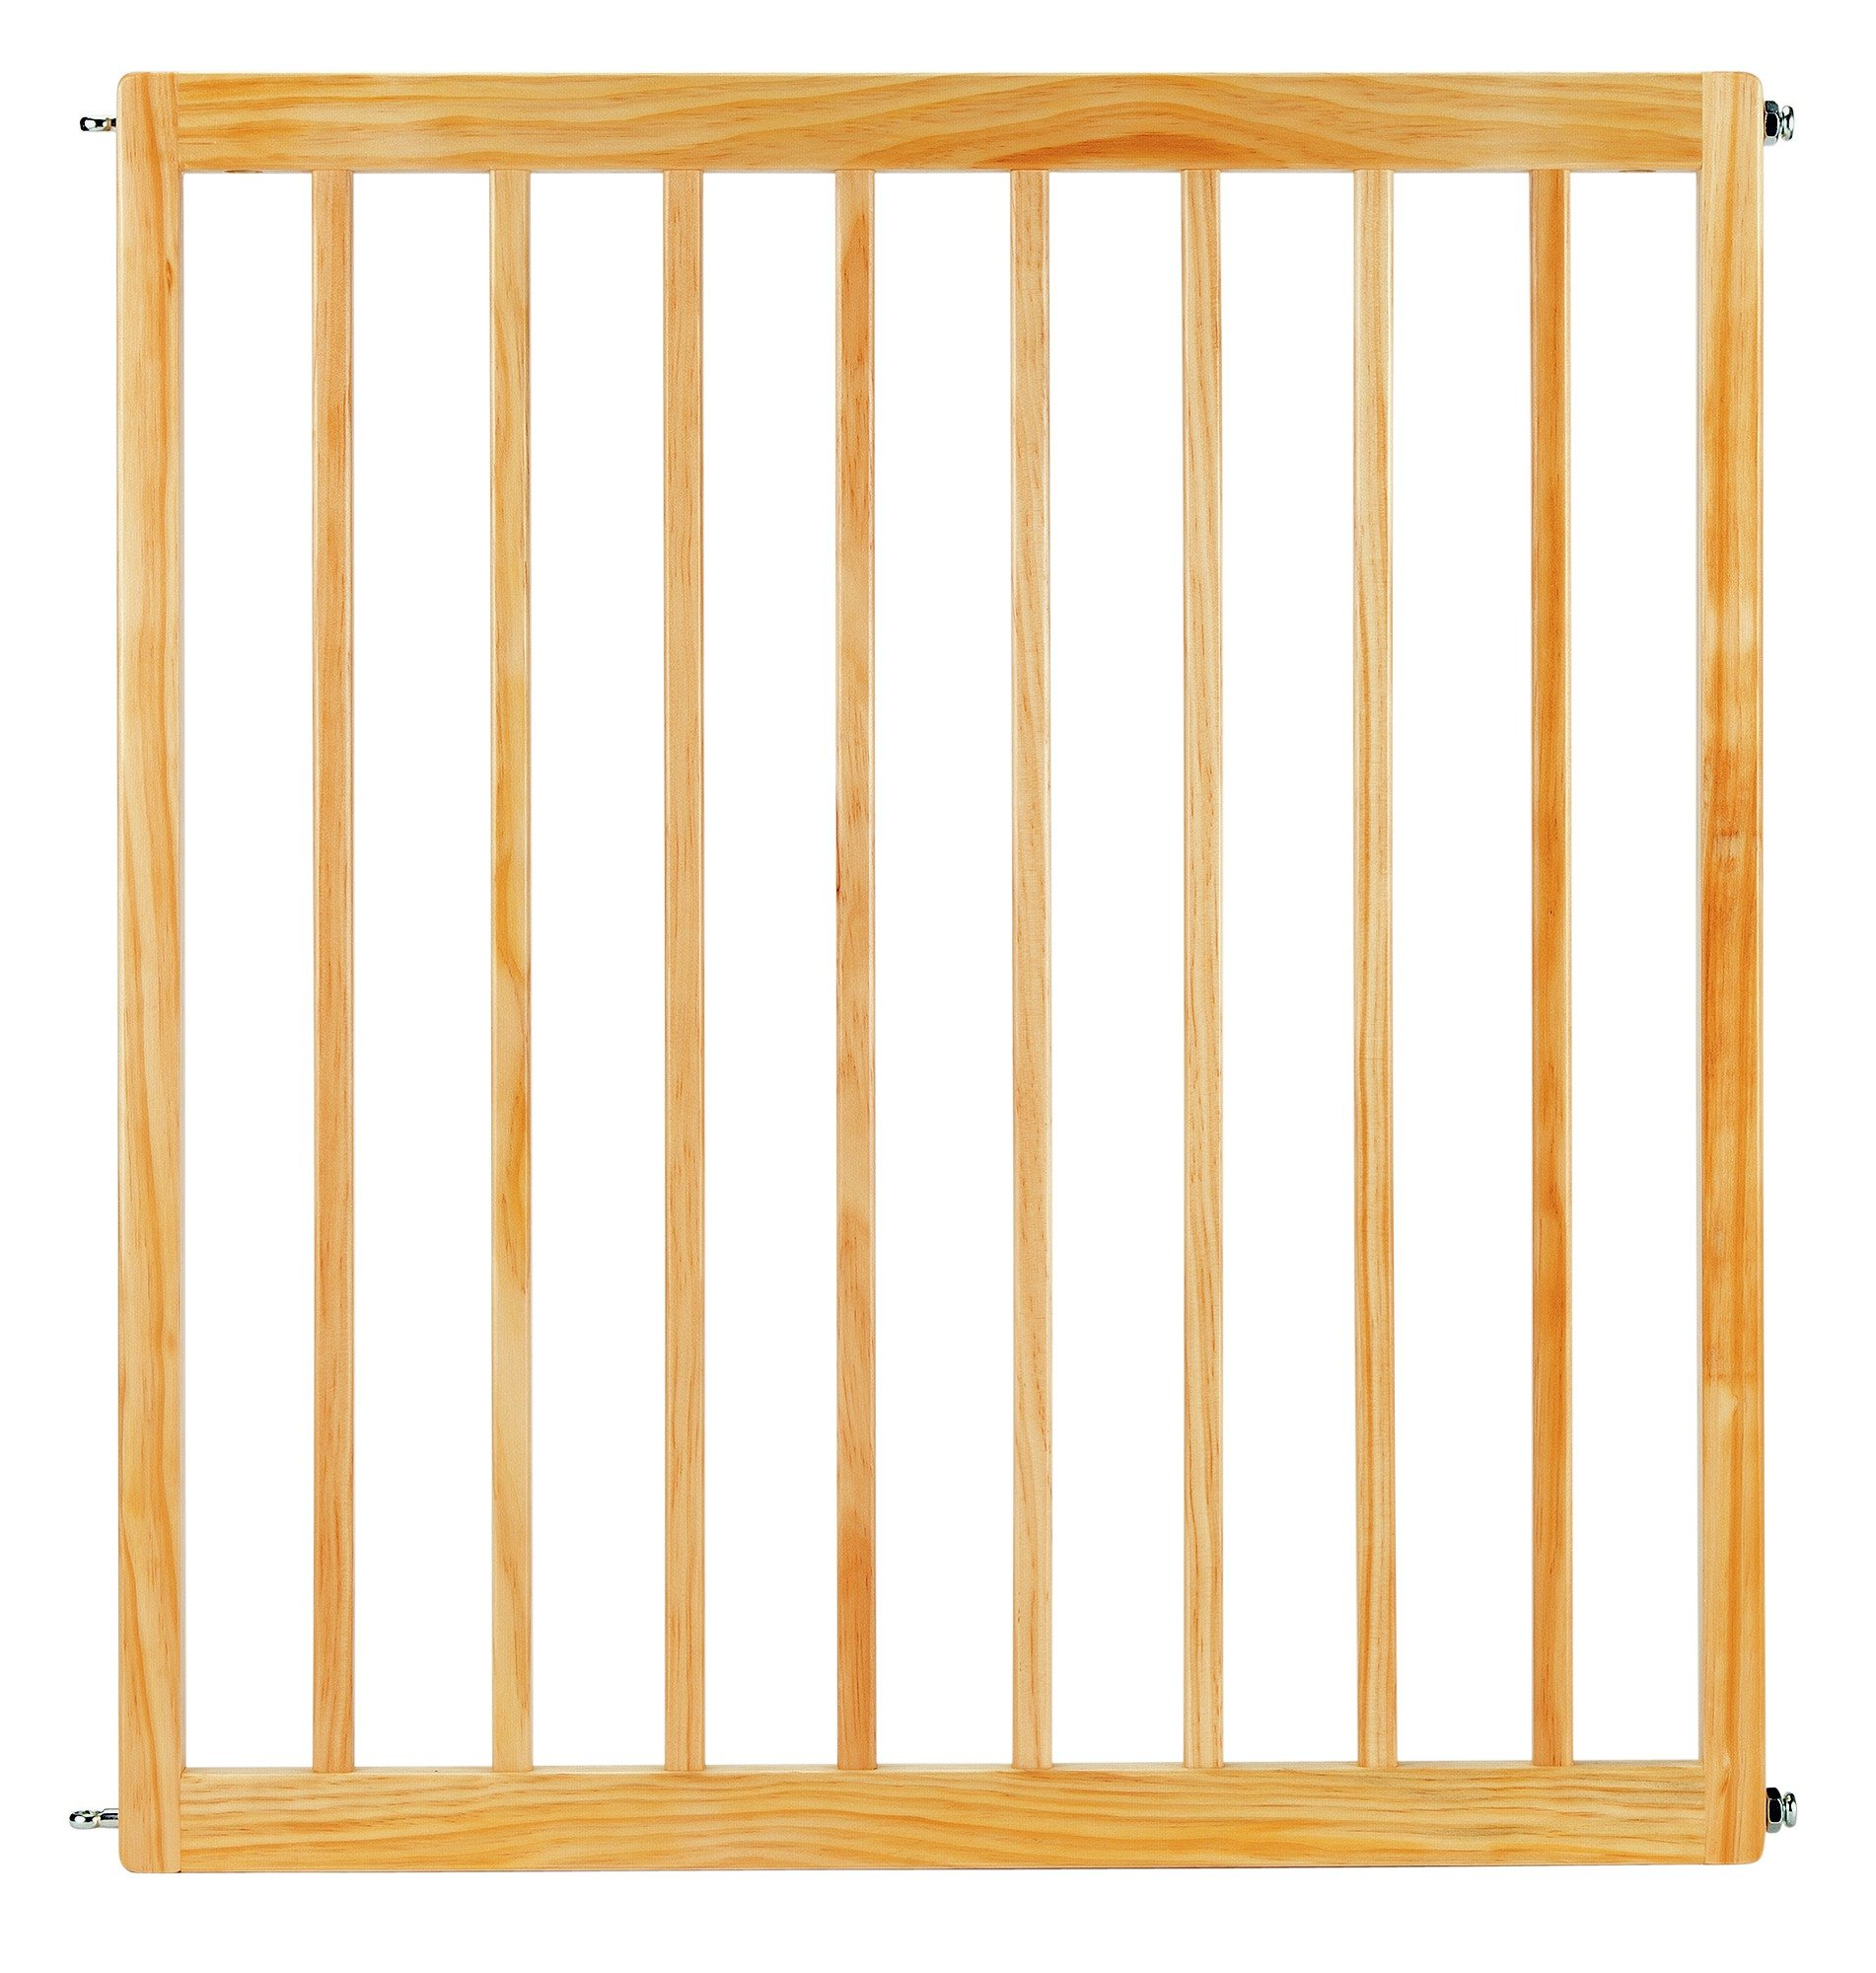 Image of Babystart Wooden No Trip Gate.